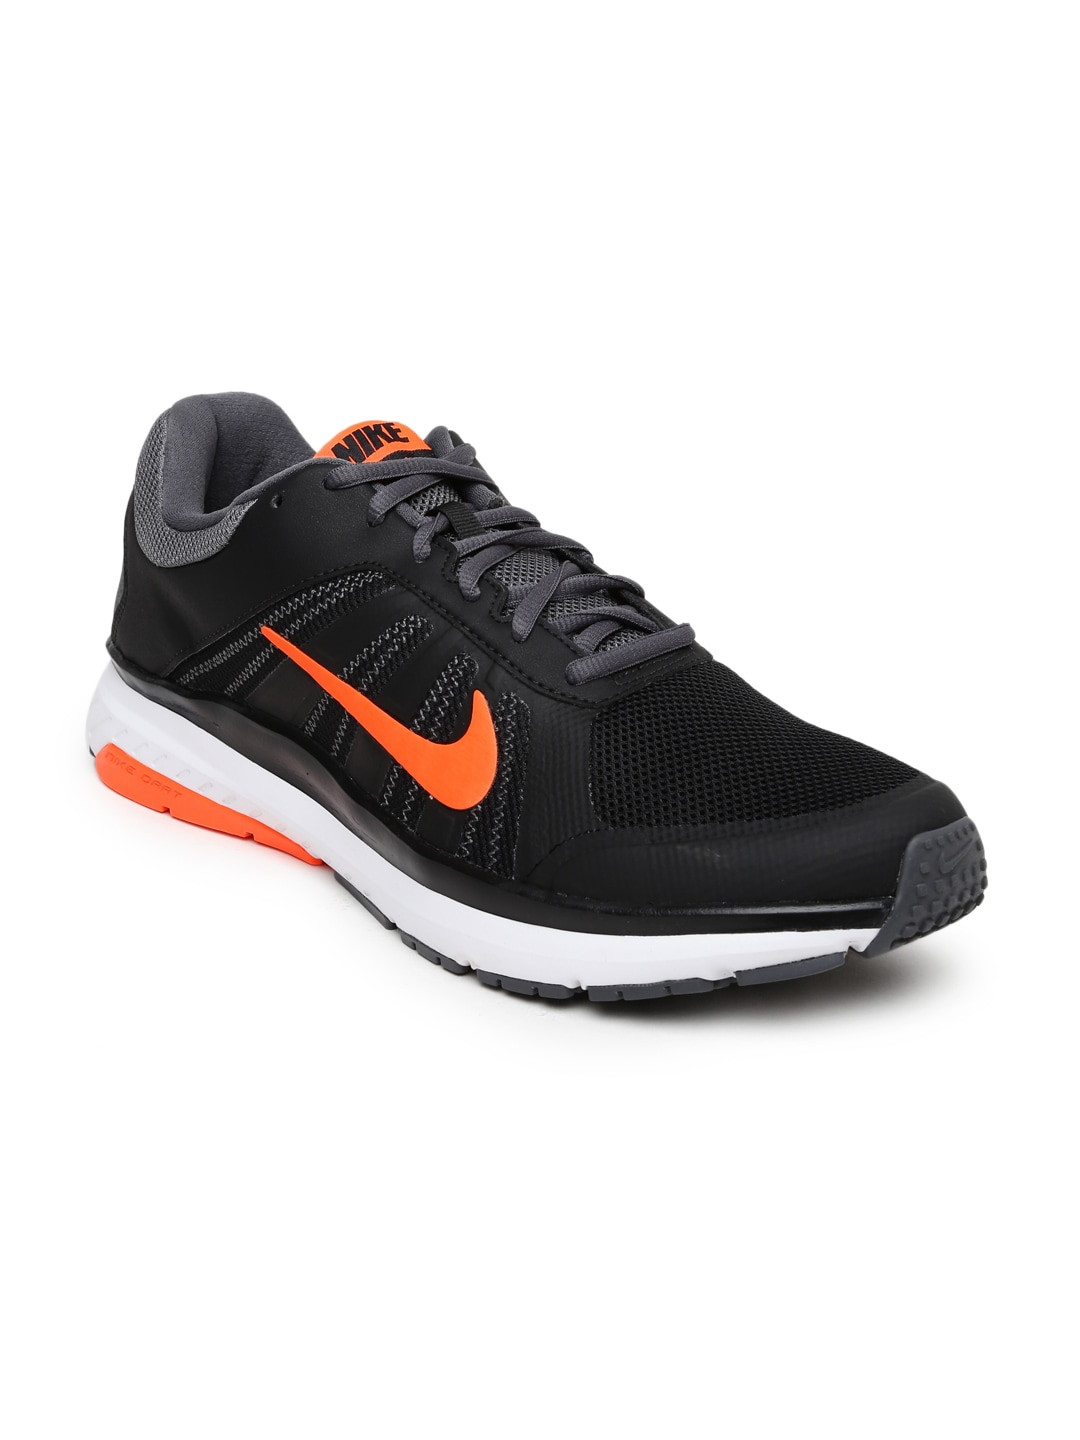 ad175ab22901 Sports Shoes - Buy Sport Shoes For Men   Women Online